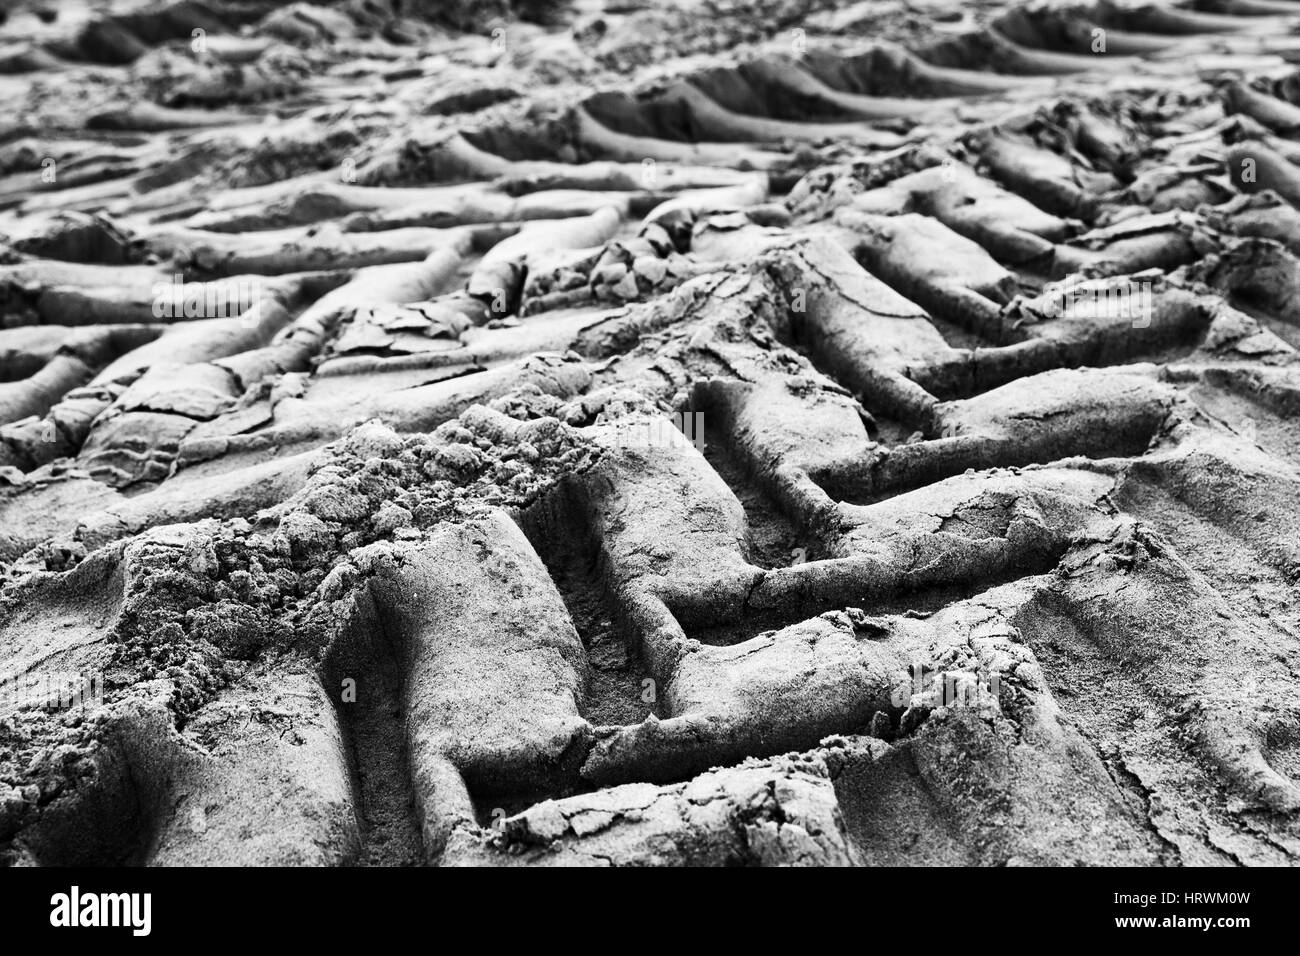 Tractor tire tracks on wet gray ground, abstract monochrome transportation background photo with selective focus - Stock Image